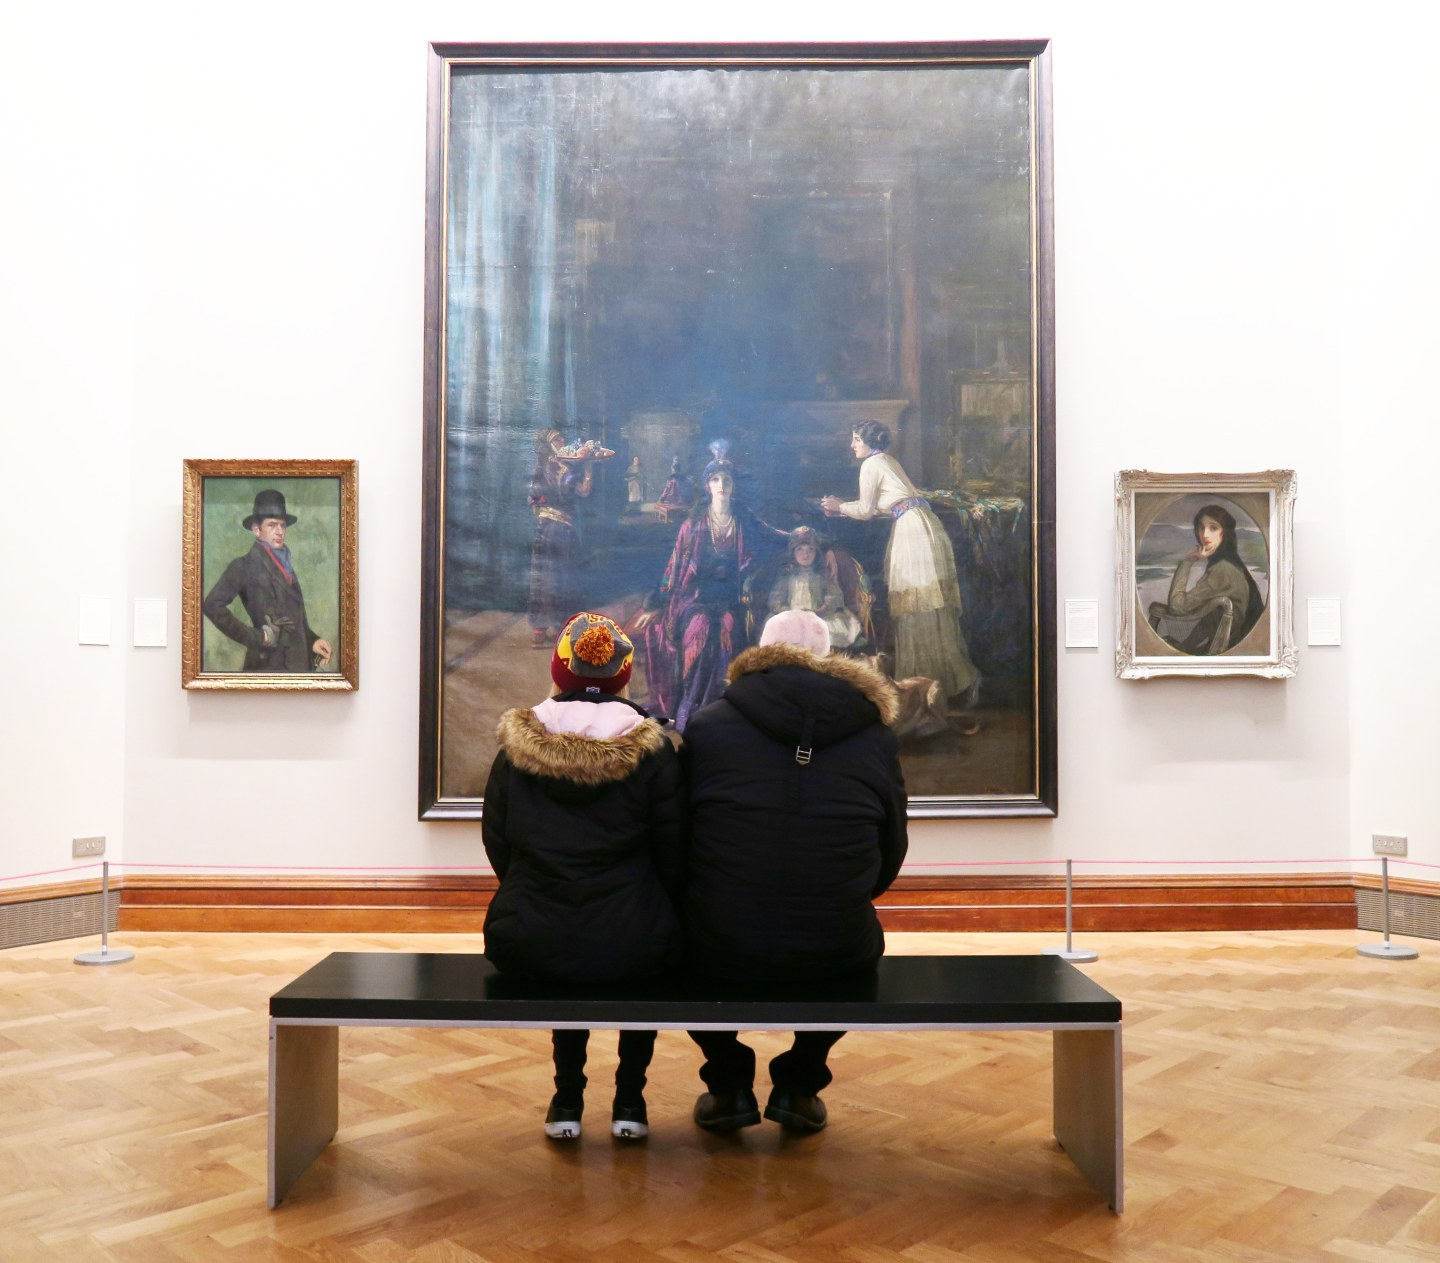 36 hours in Dublin - art gallery